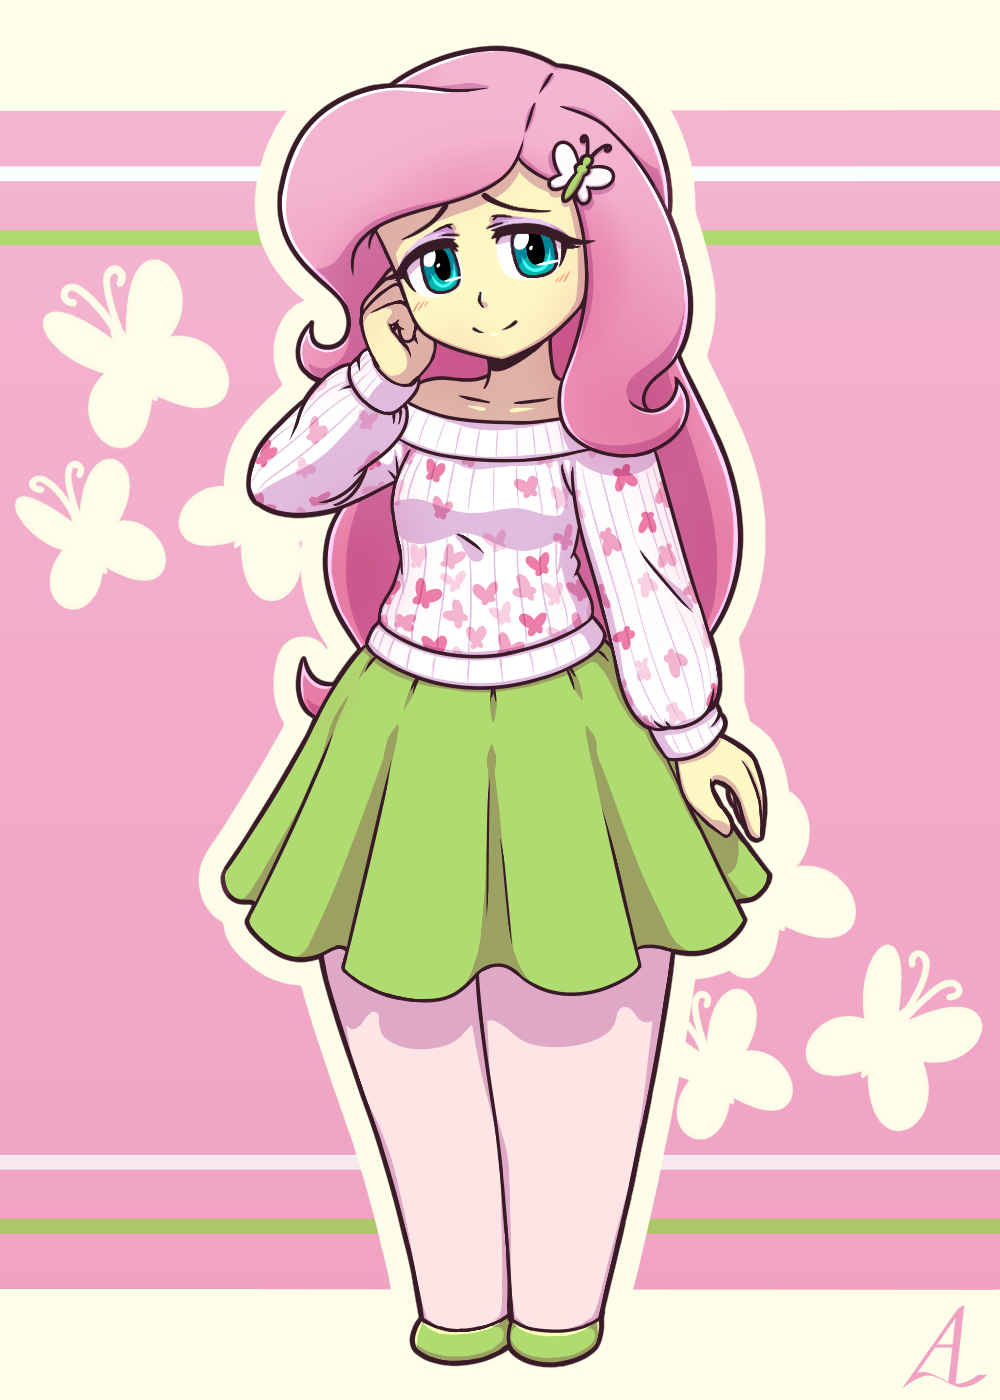 Fluttershy: Aid (or trying to) by AcesRulez13 on DeviantArt